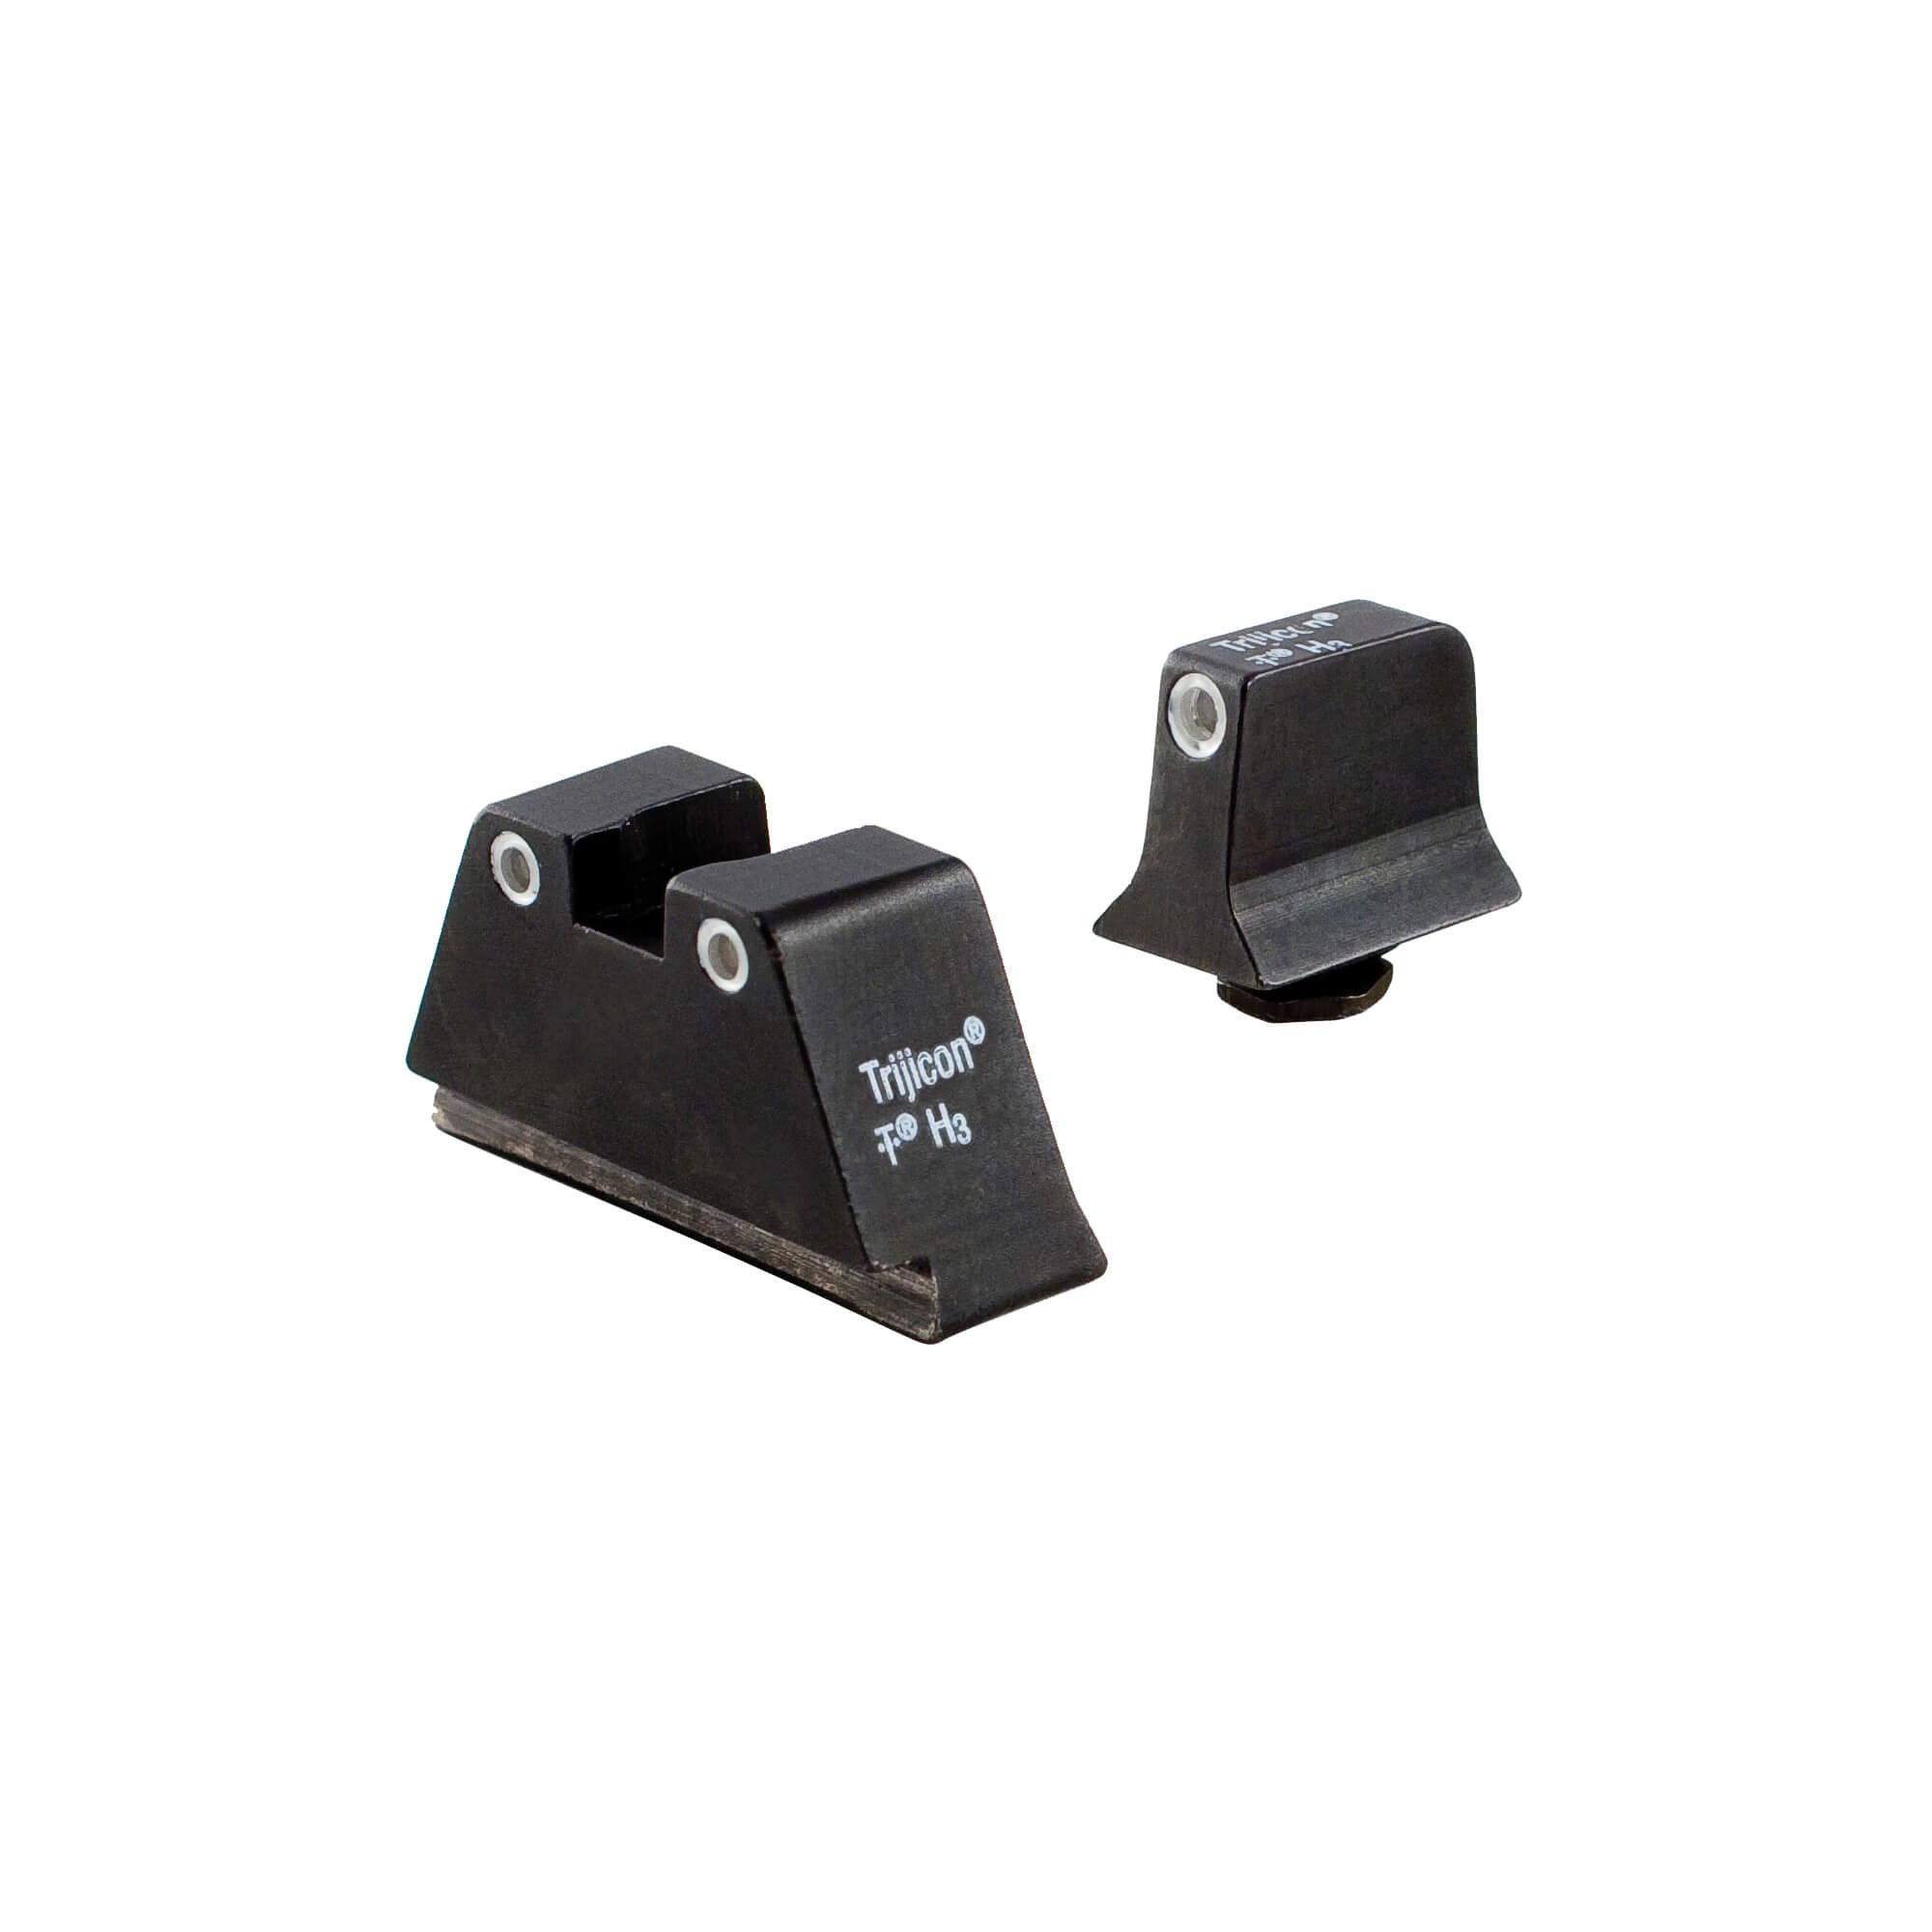 Trijicon Suppressor White Outline Night Sight Set with Green Lamps for Glock Models